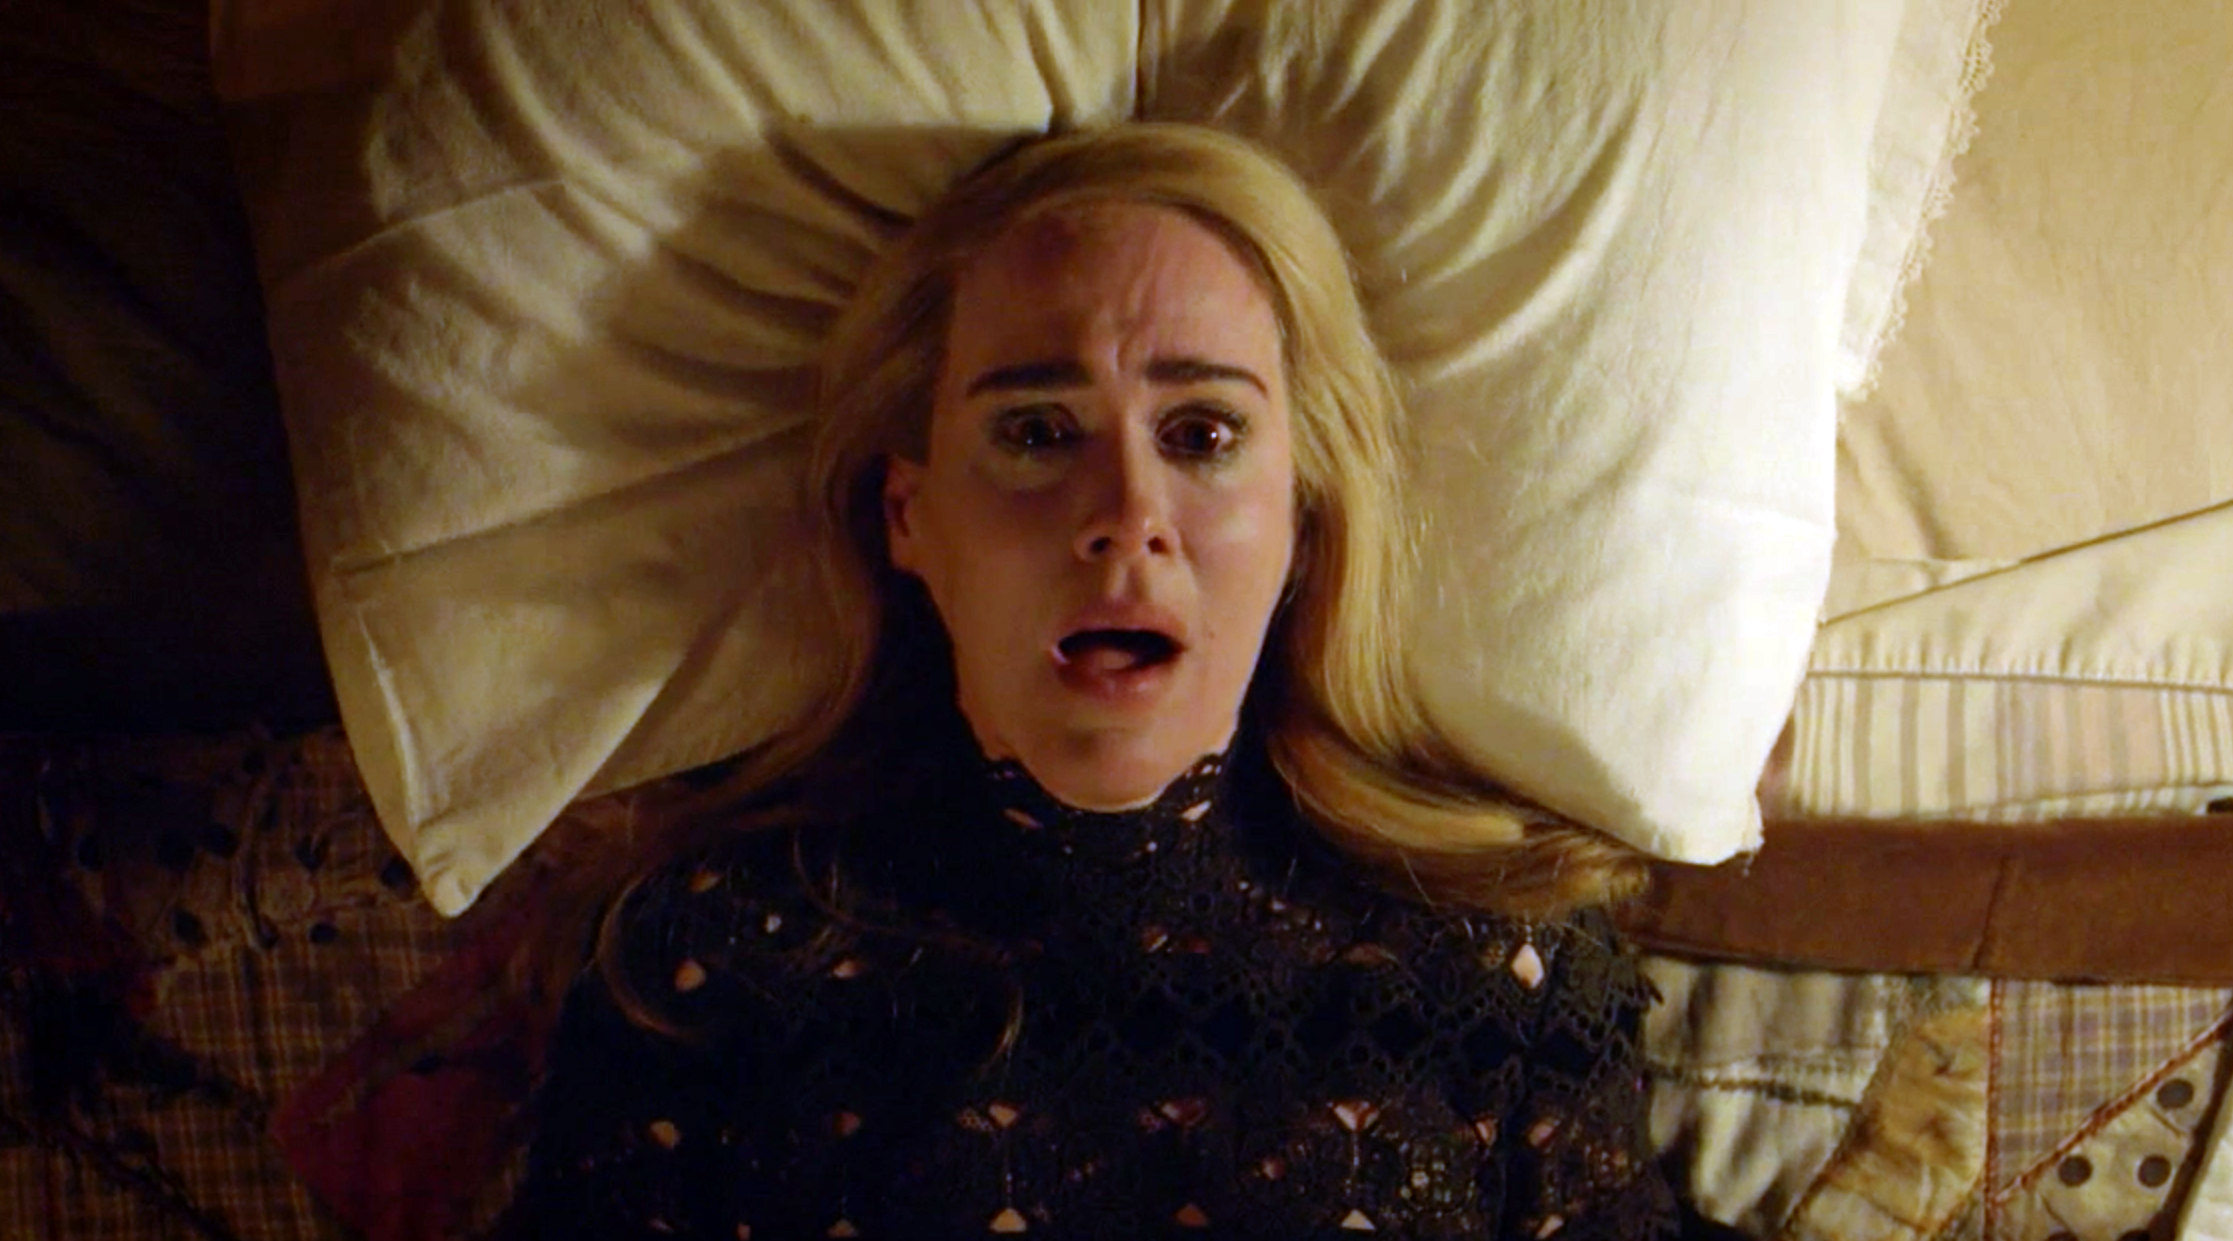 American Horror Story: 10 Unanswered Questions We Still Have About Apocalypse